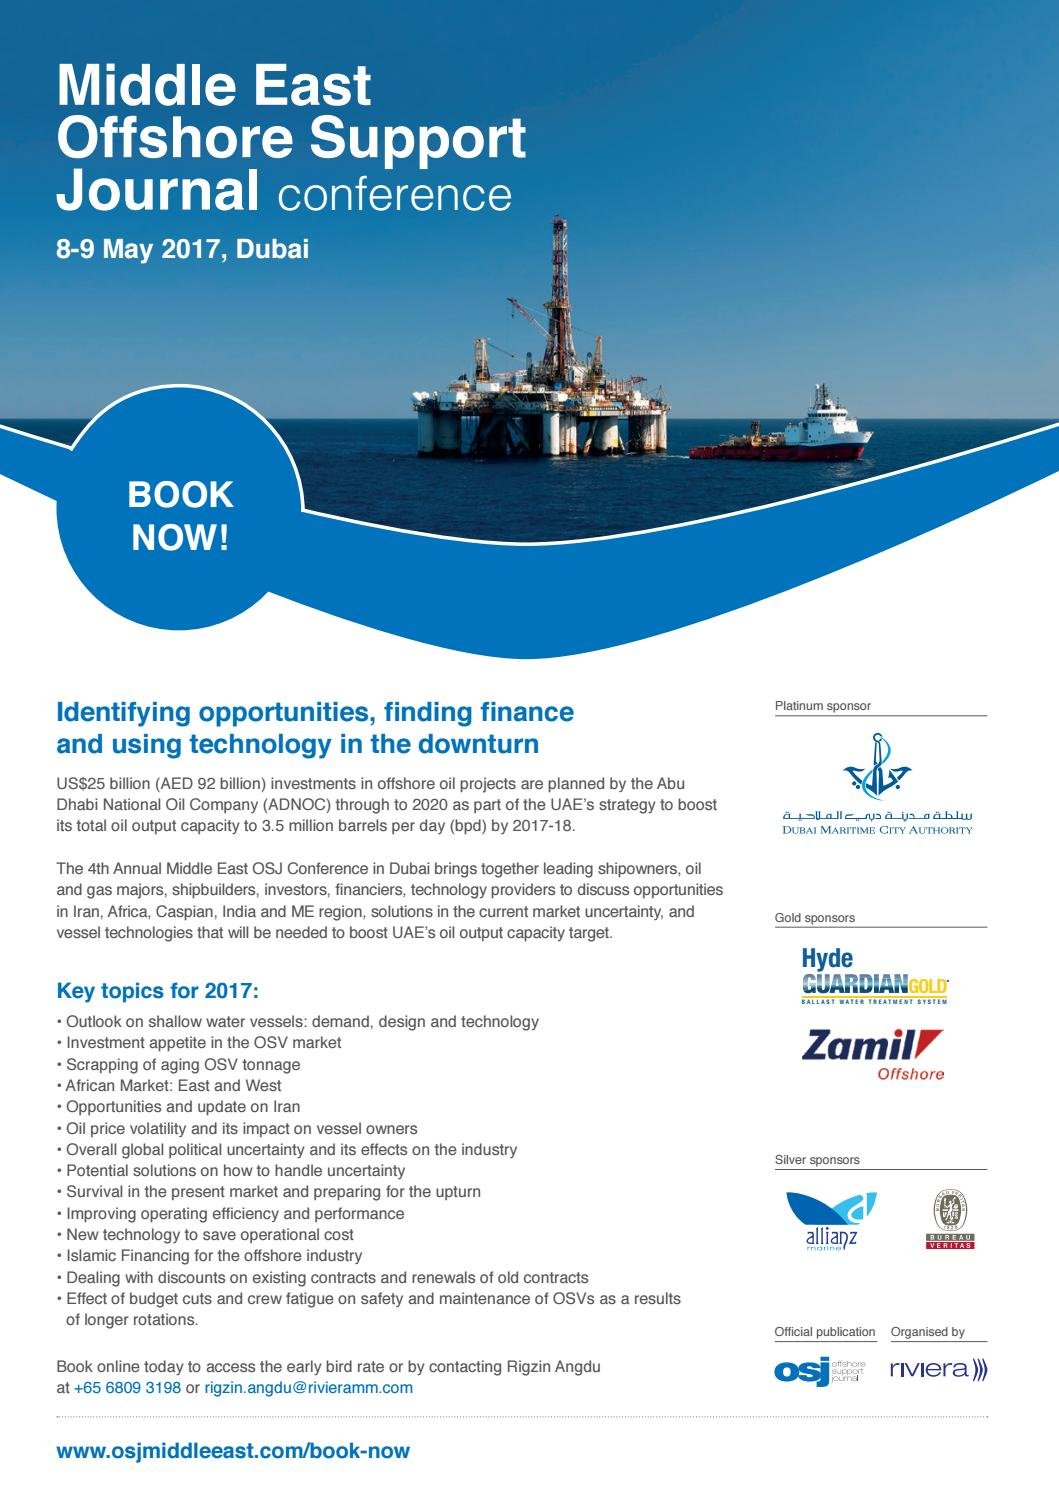 Offshore Support Journal March 2017 by rivieramaritimemedia